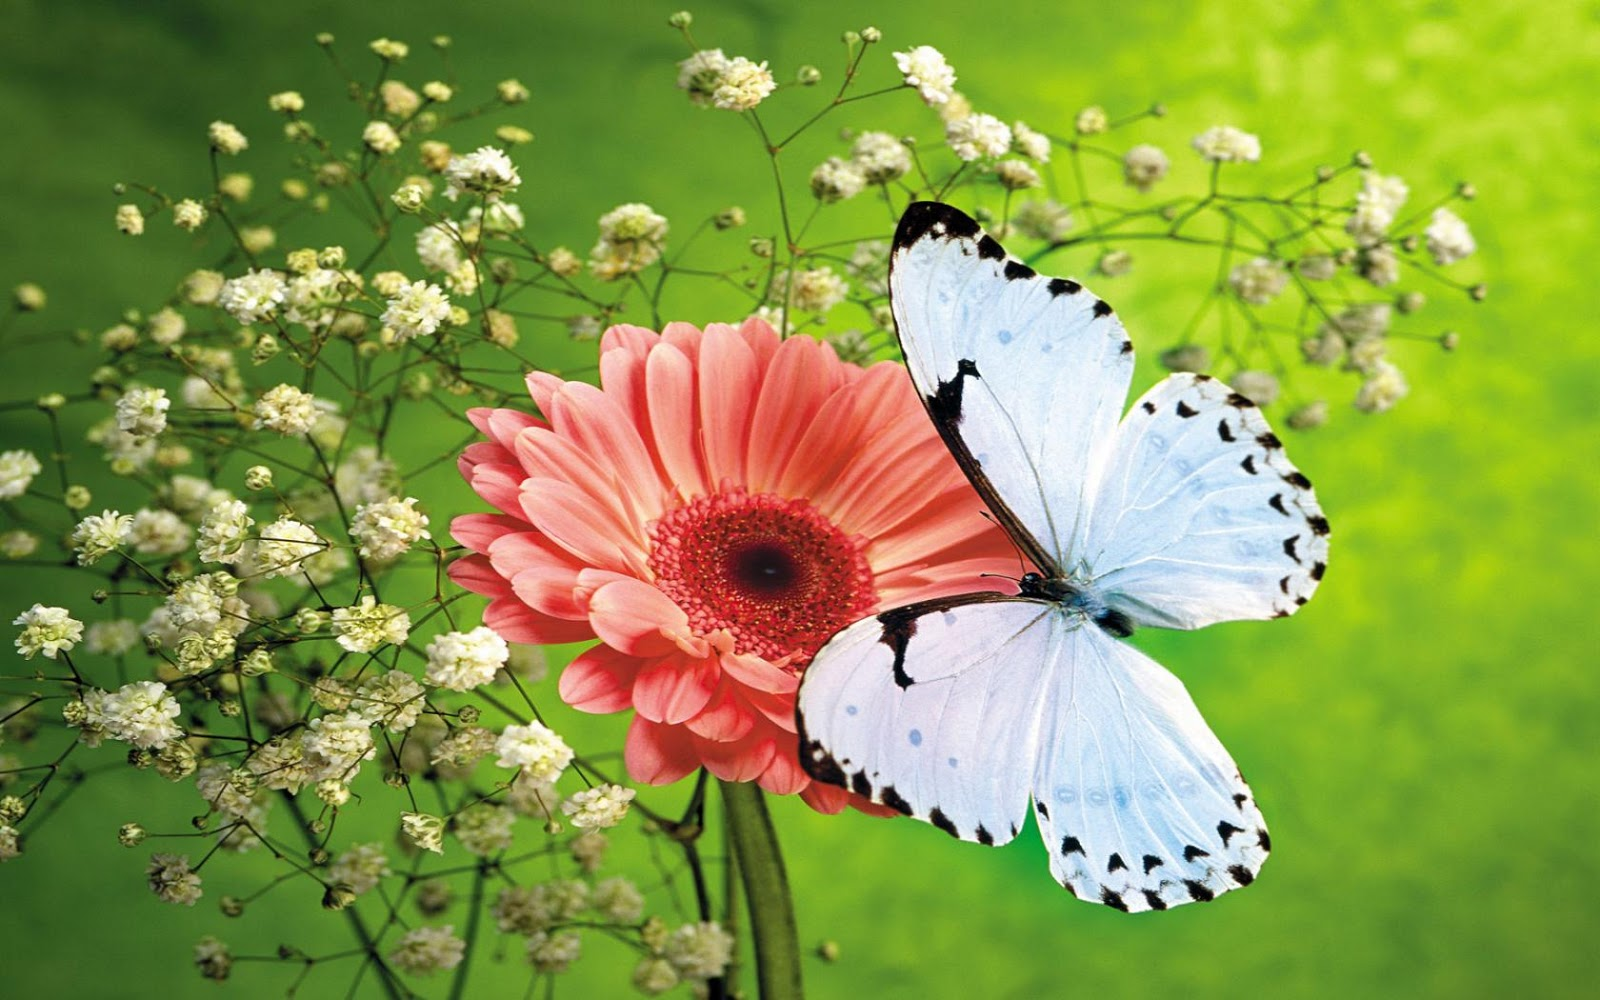 Hdwallpapers of butterflies wild life for Immagini farfalle per desktop